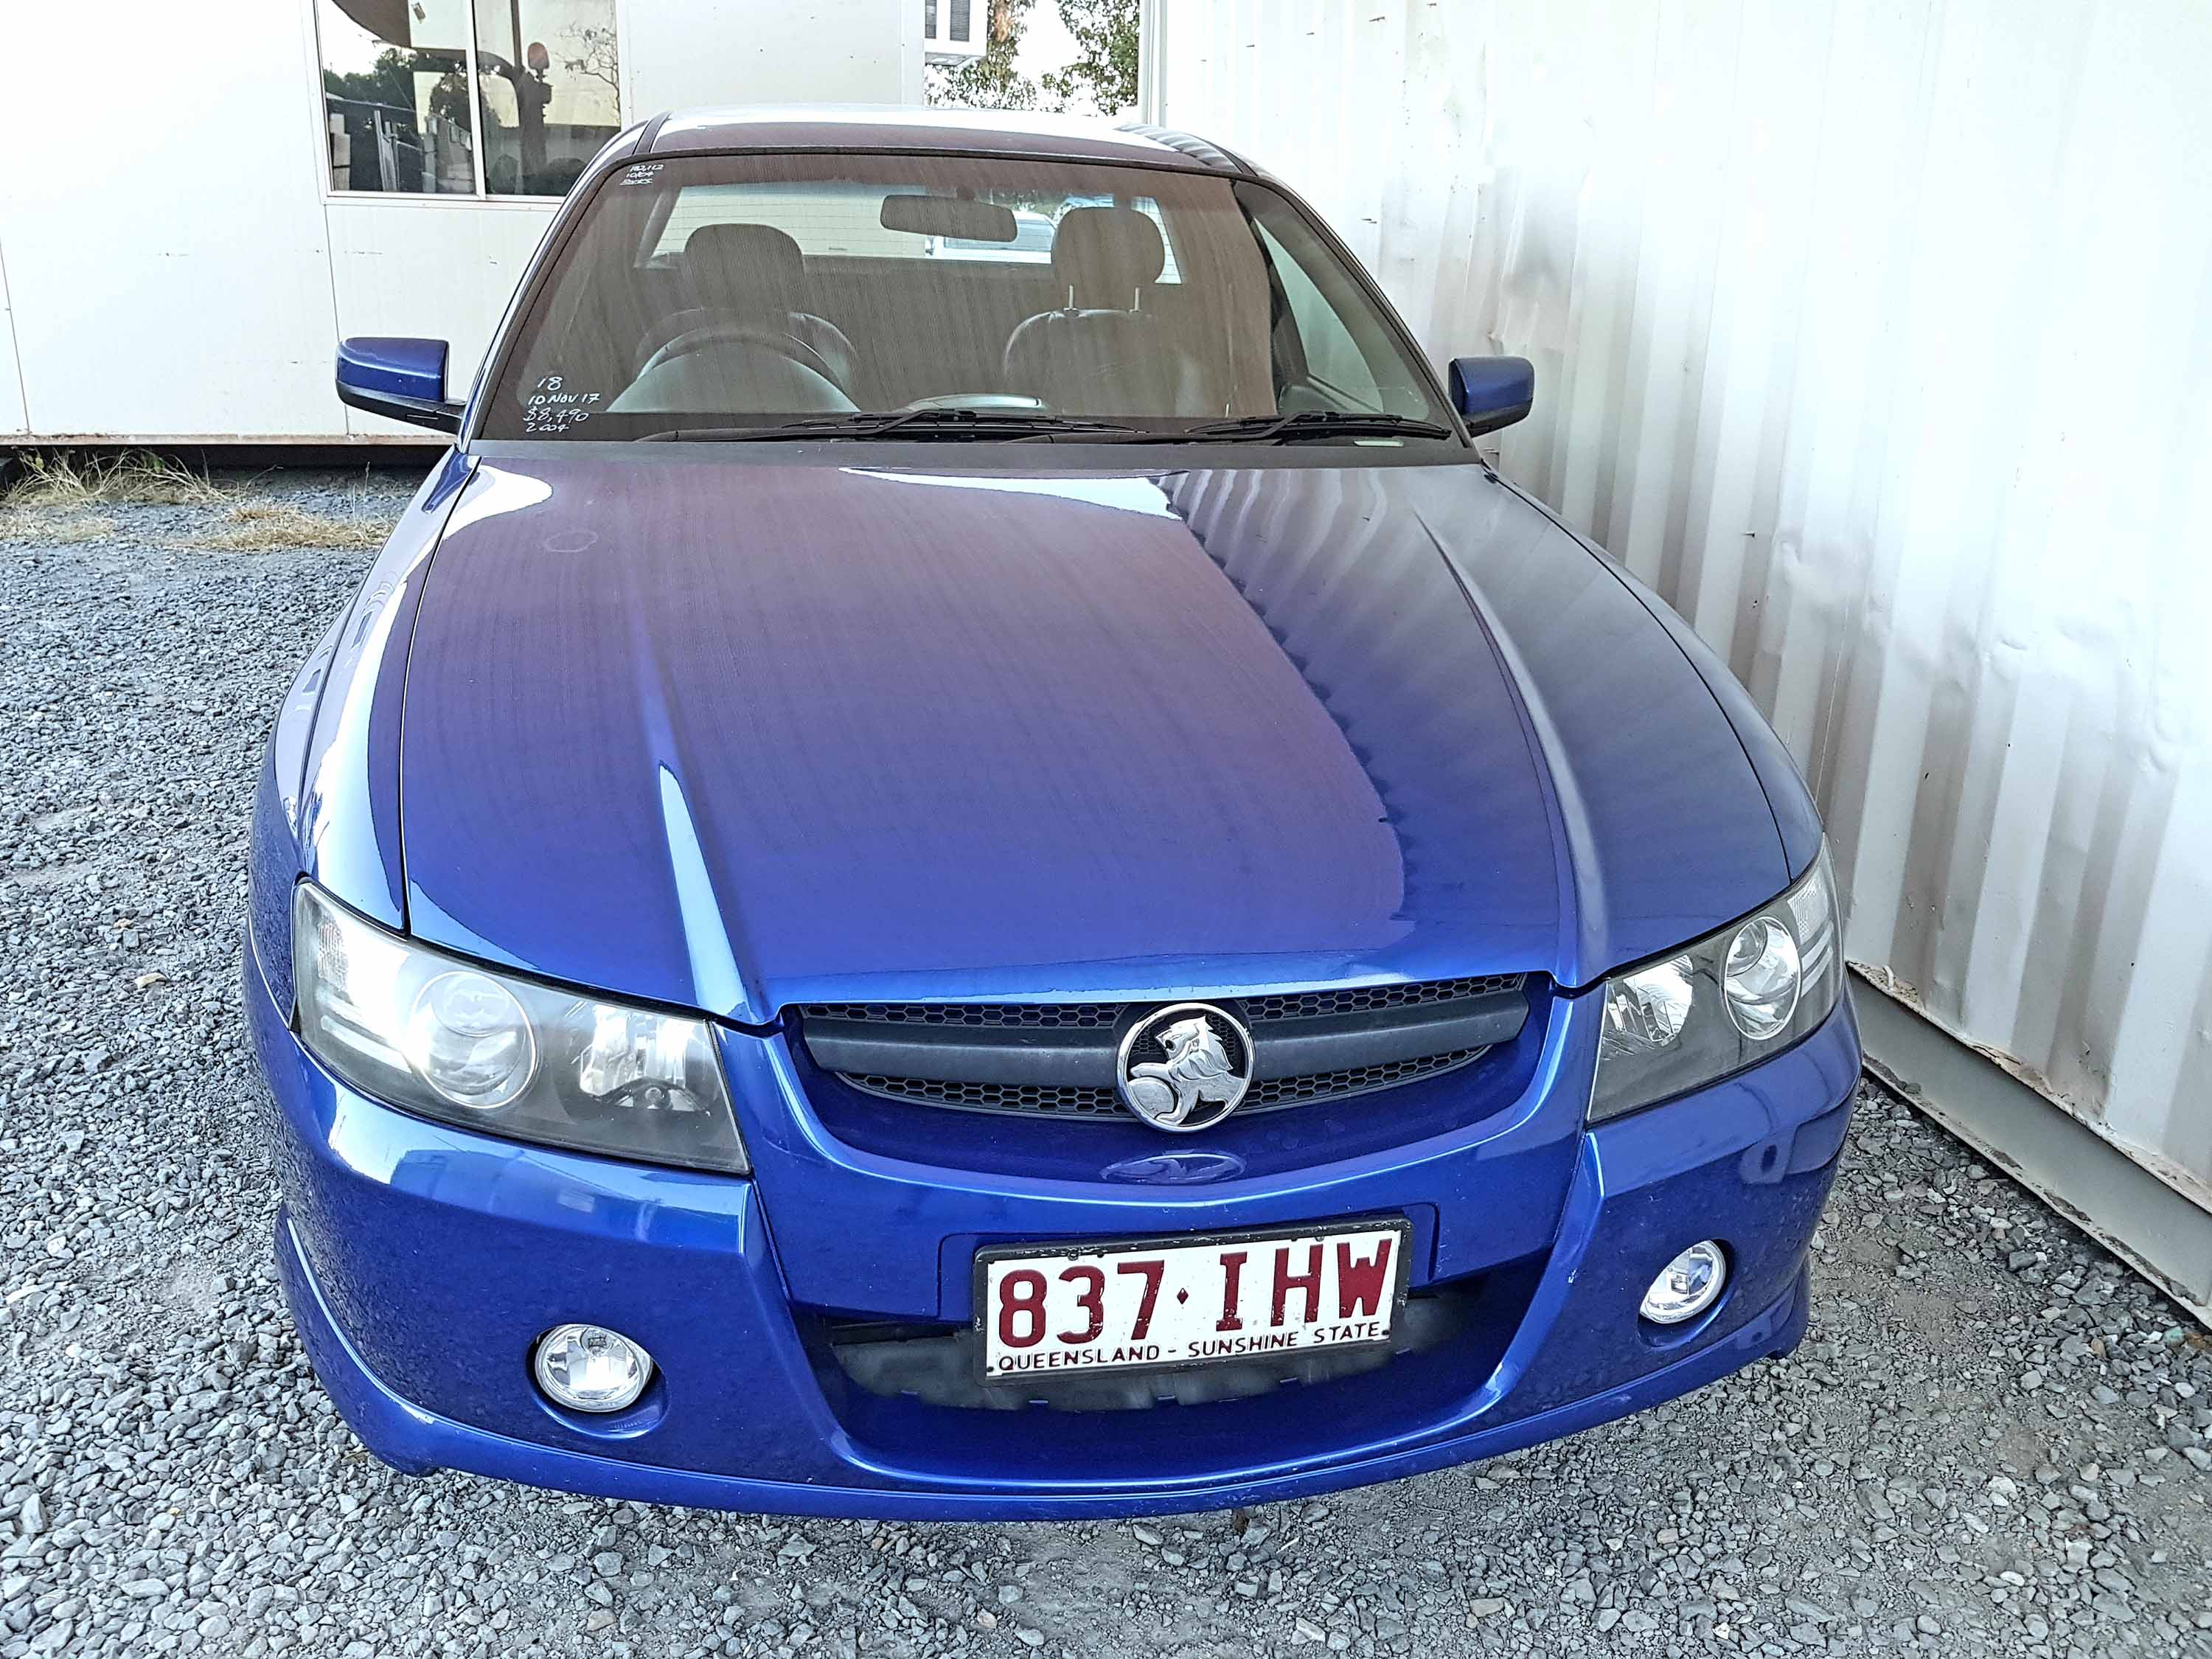 v8 ss commodore ute automatic 2004 blue used vehicle sales. Black Bedroom Furniture Sets. Home Design Ideas